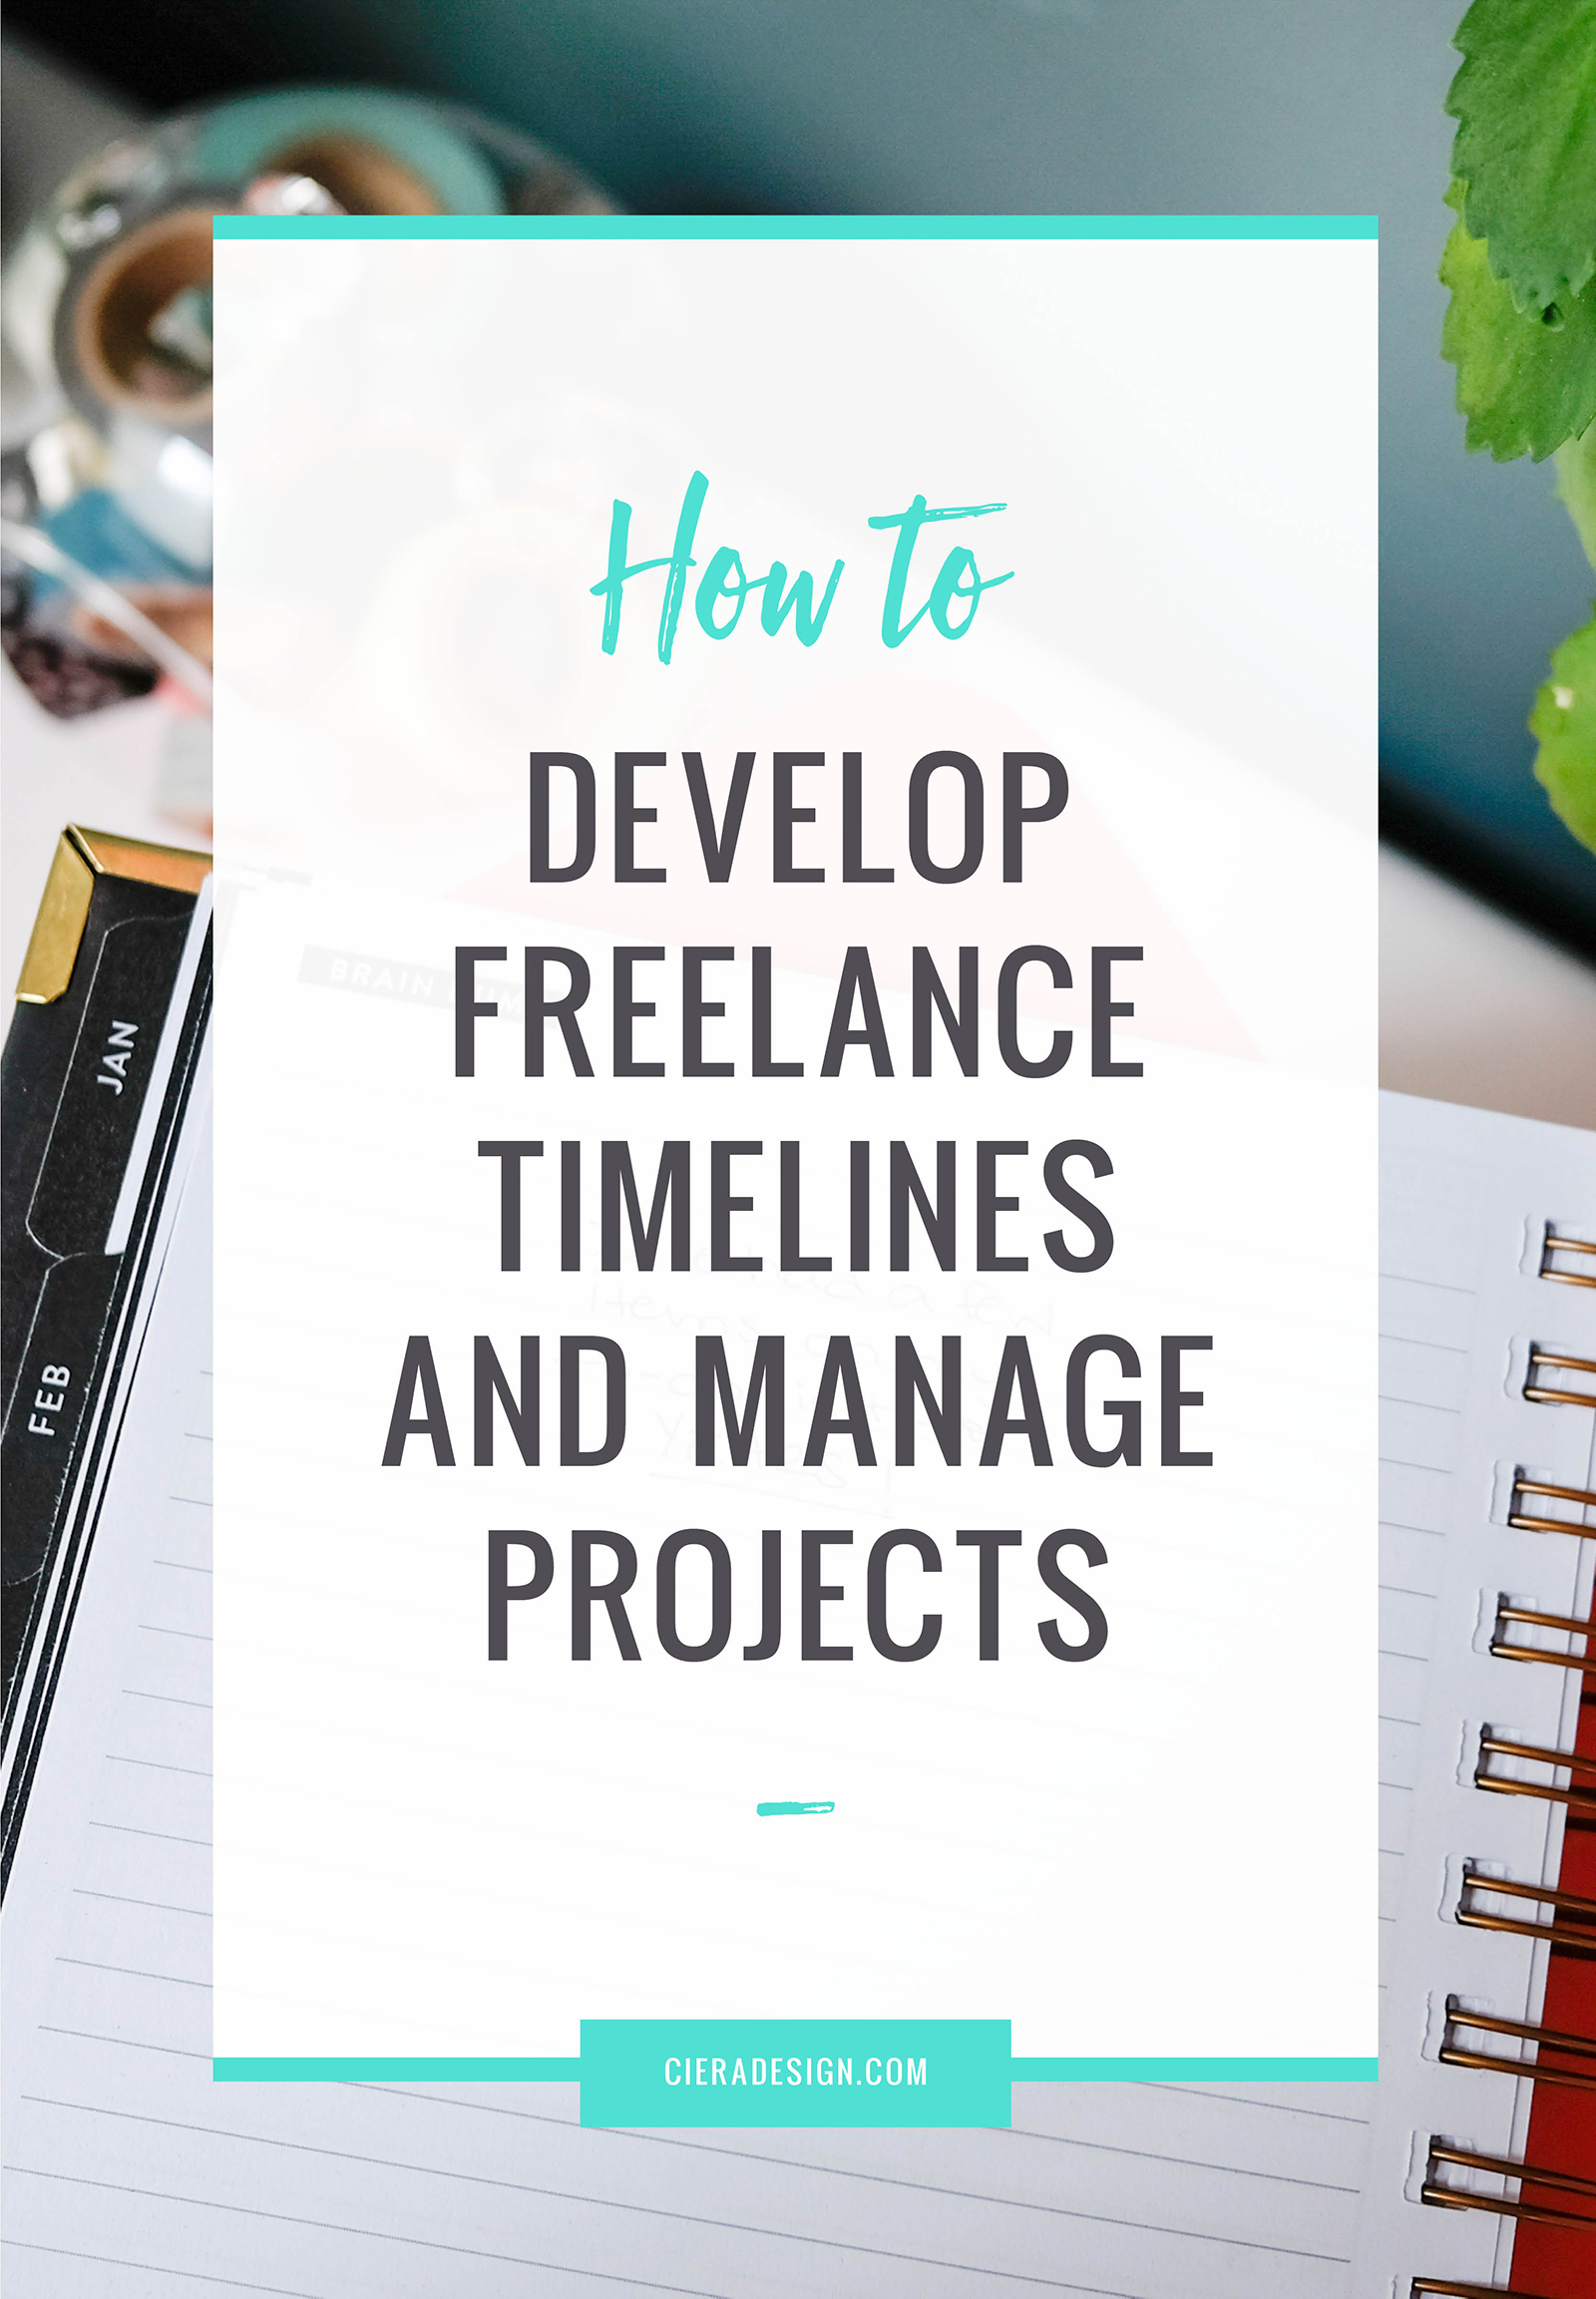 Freelance tips on developing a project production schedule and handling multiple deadlines and overlapping projects.